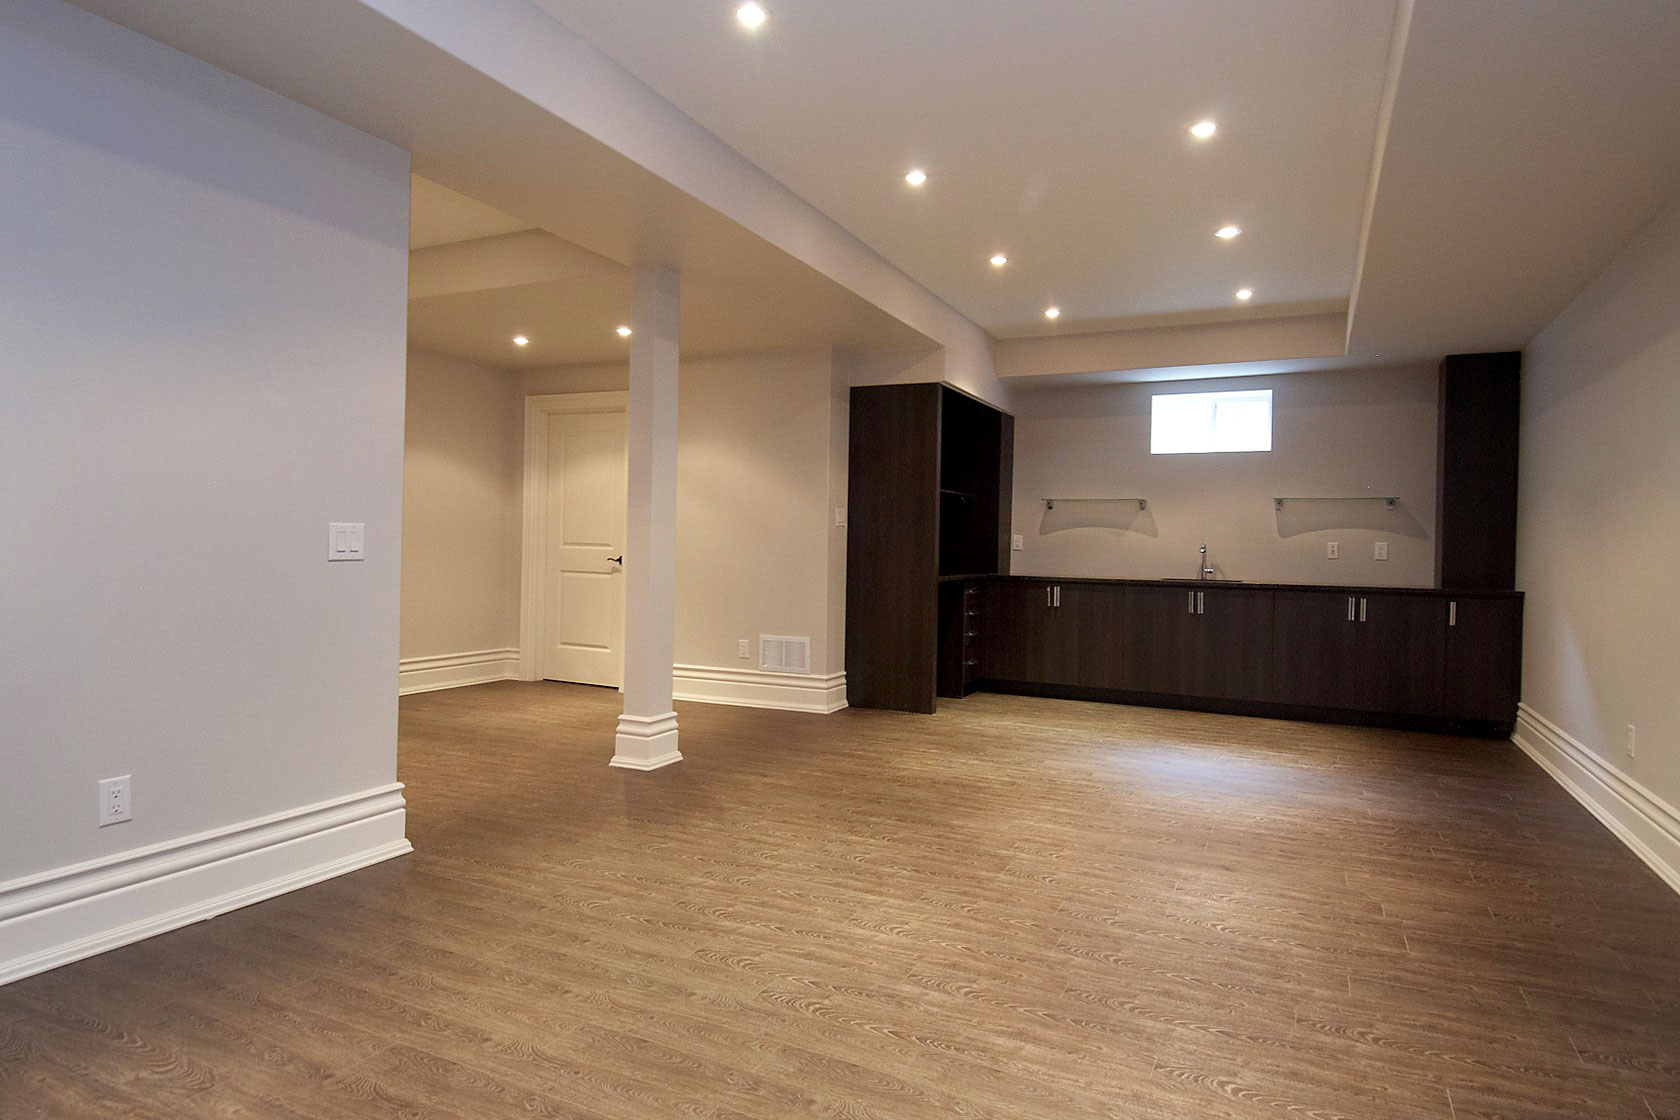 Basement Renovation Project in Etobicoke